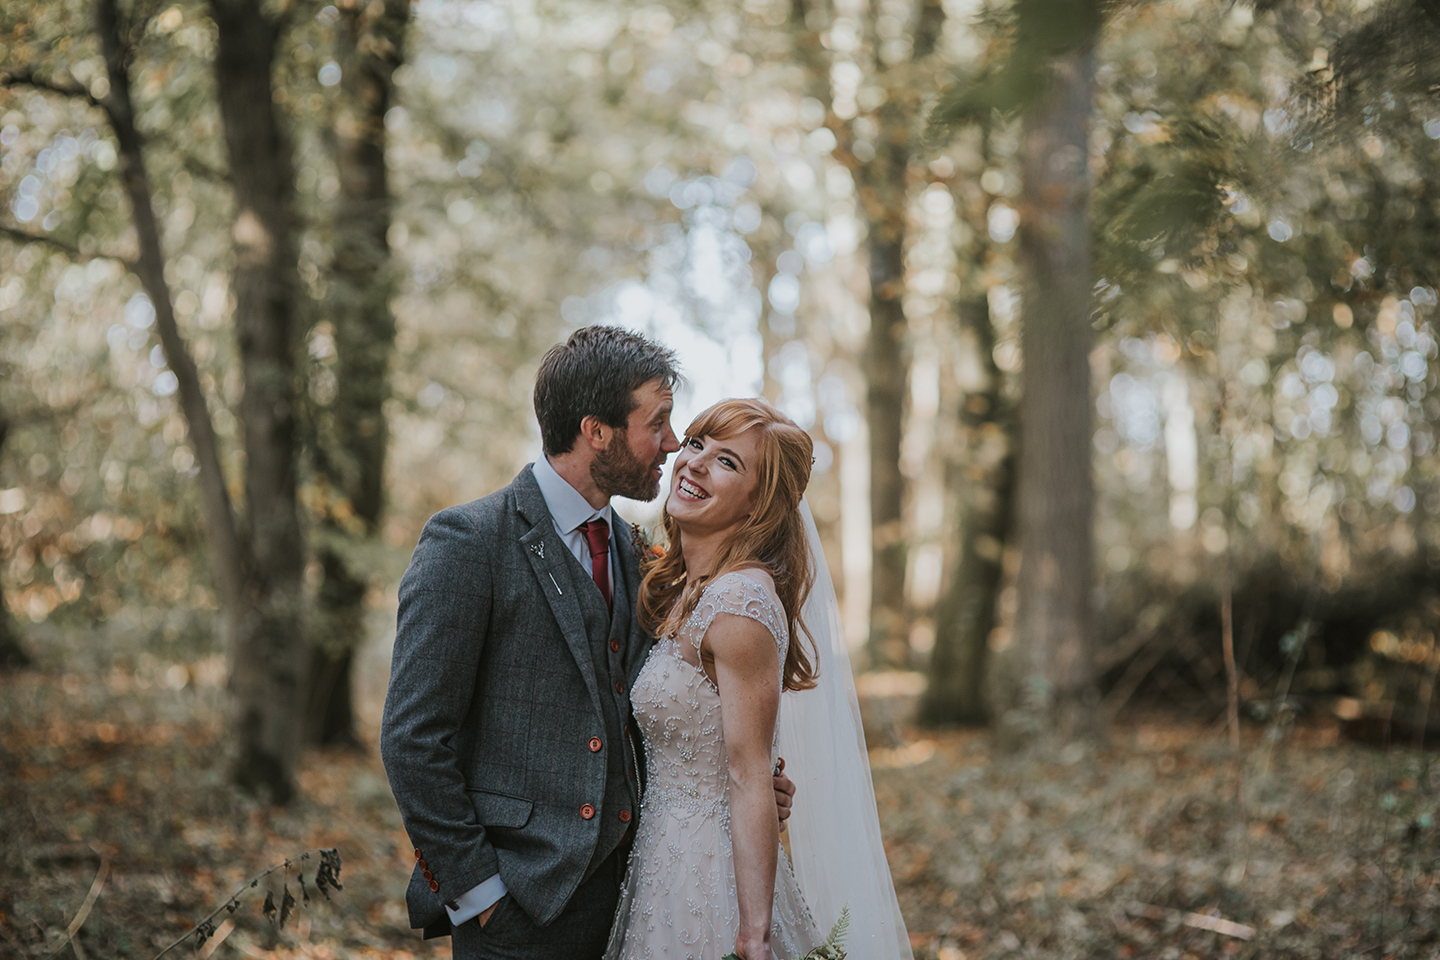 A bride and groom explore the woodlands at Bassmead Manor Barns wedding venue in Cambridgeshire